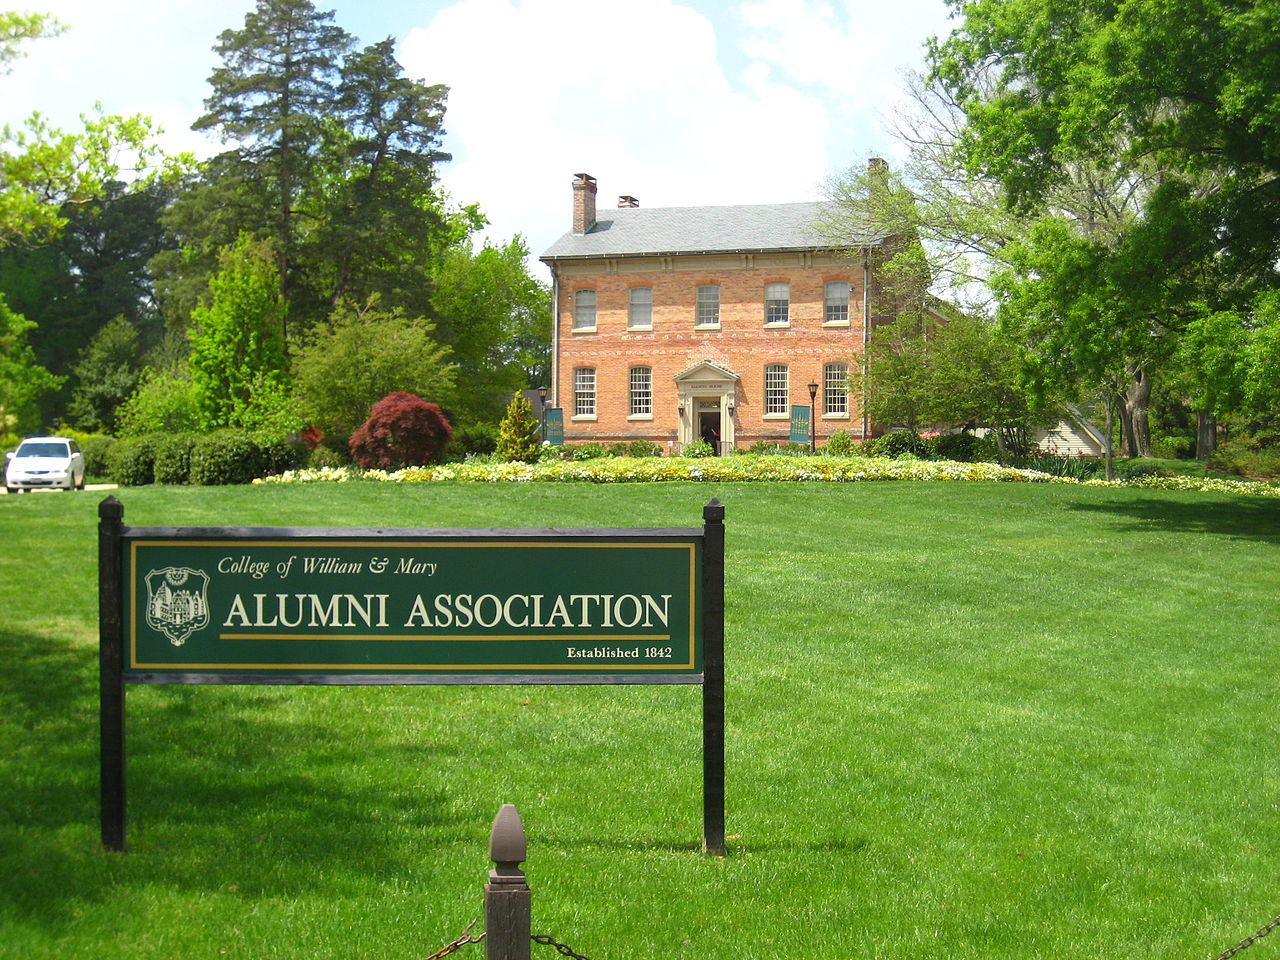 Sightseeing Place to Visit In Williamsburg-College of William and Mary